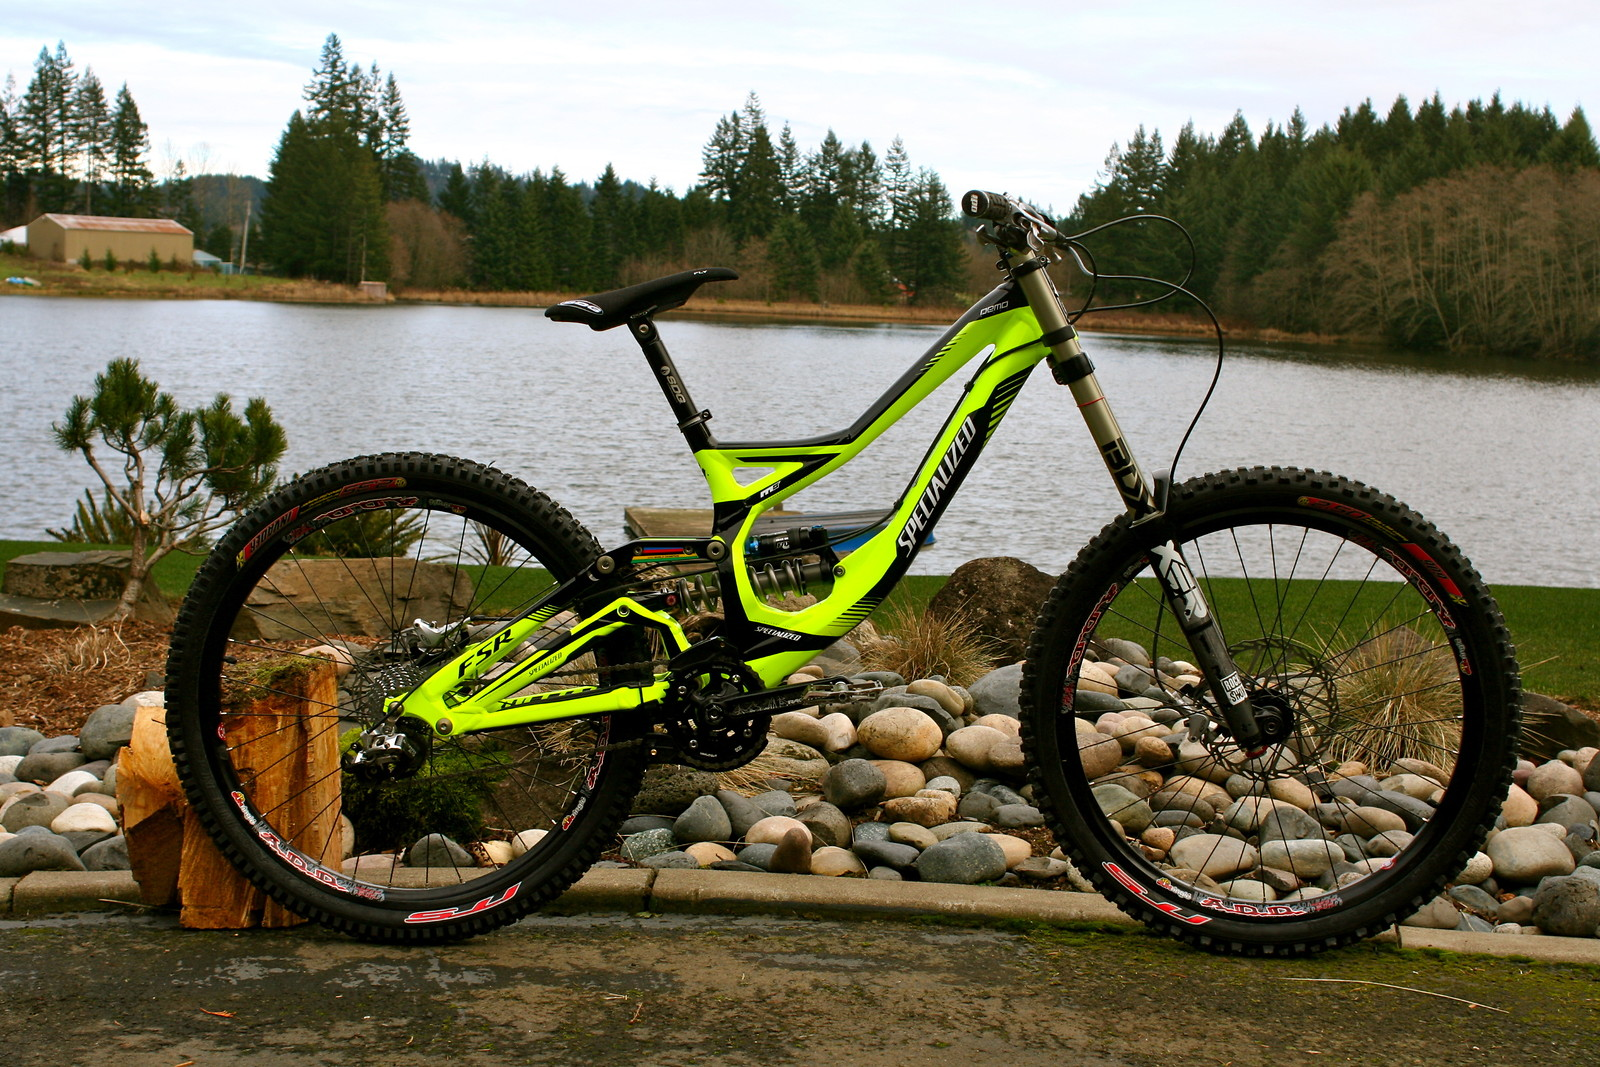 2011 demo. Boxxer Team. Avid Elixir brakes. Fox RC4 shock with Ti spring. ADD Wheelset with Intense Tires. Atlas cranks and Lg1 guide. SDG Post and seat. Funn DH Bars, Sunline stem. Premium Pedals. X9 Drivetrain. Total build comes in at 37 lbs.